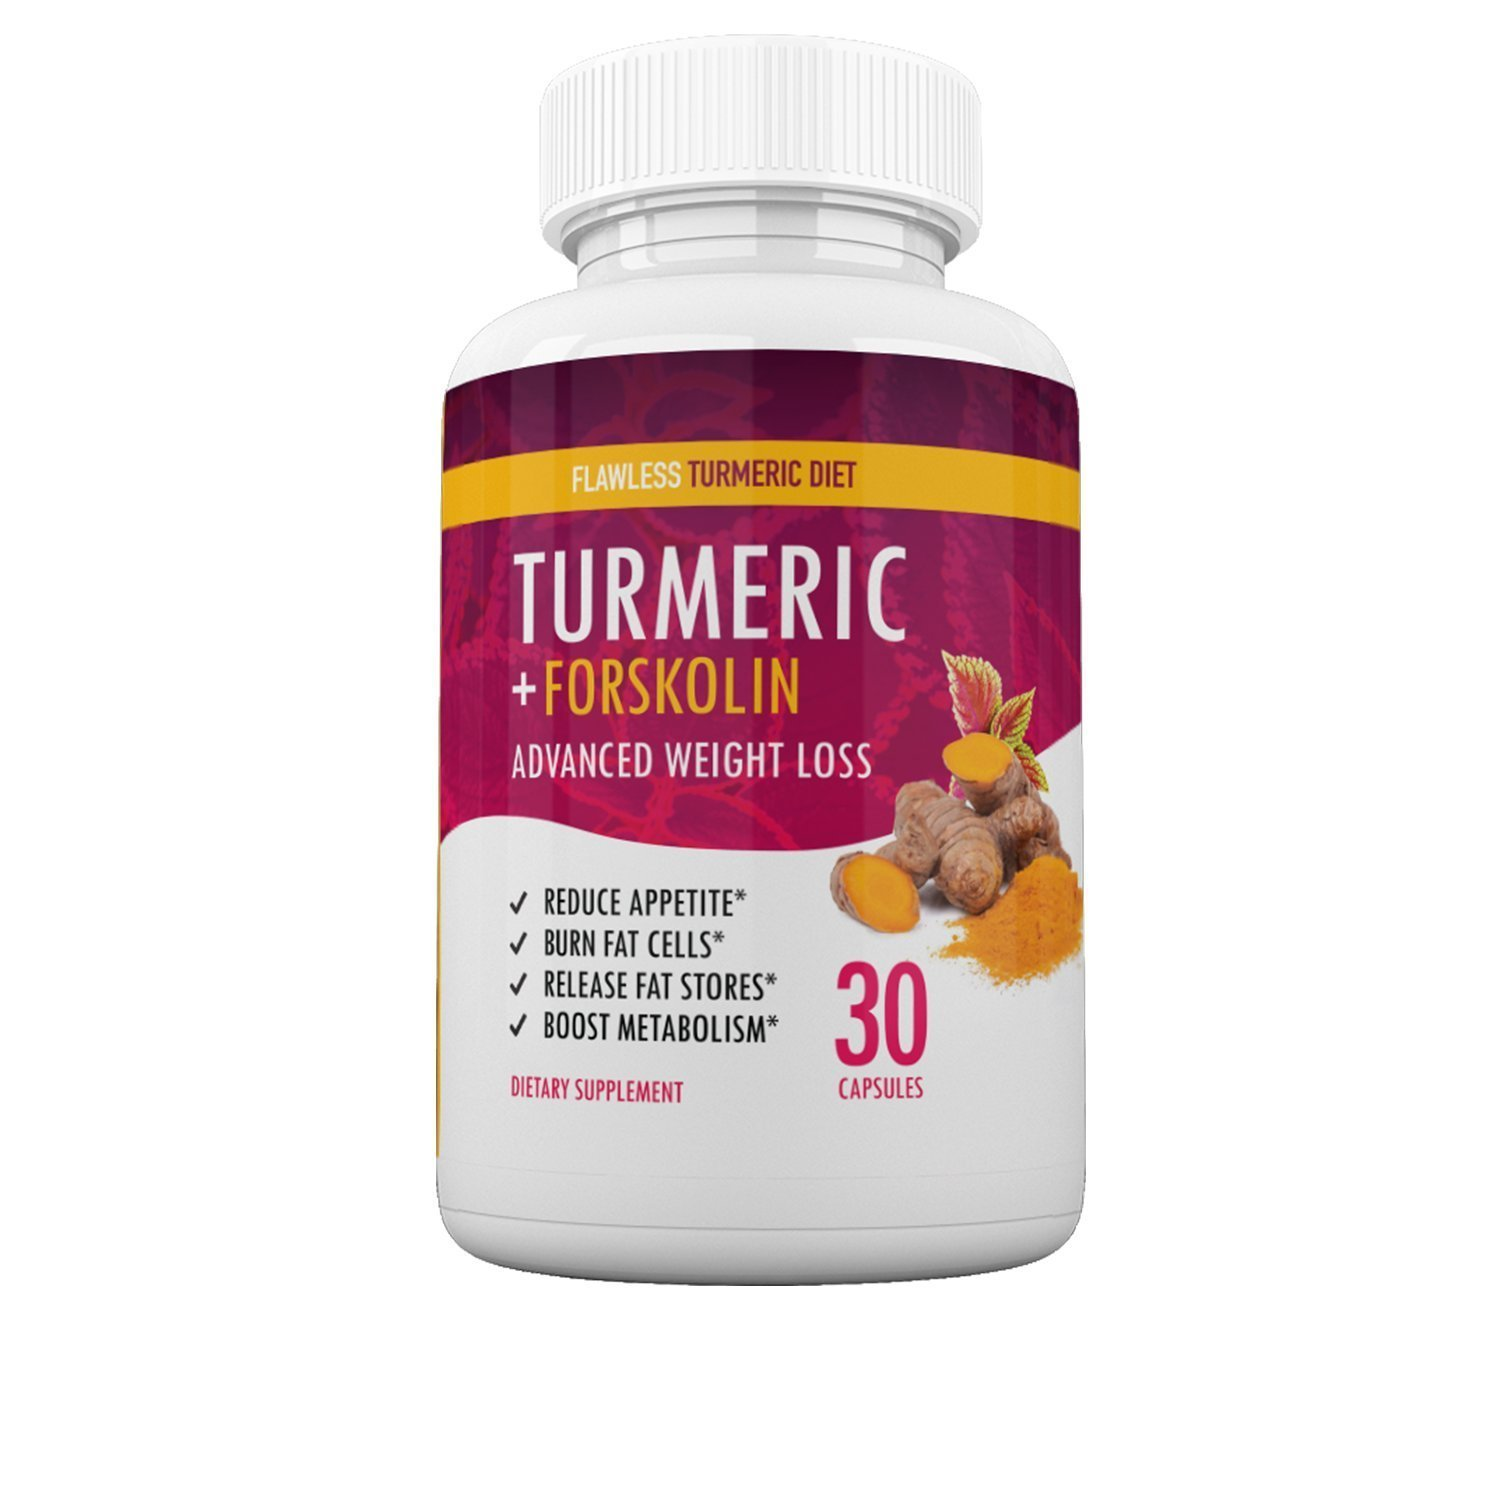 Flawless Turmeric Diet - Turmeric + Forskolin Advanced Weight Loss Formula - Suppress Appetite, Boost Metabolism, Burn Fat - 30 Day Supply by Rev Labs